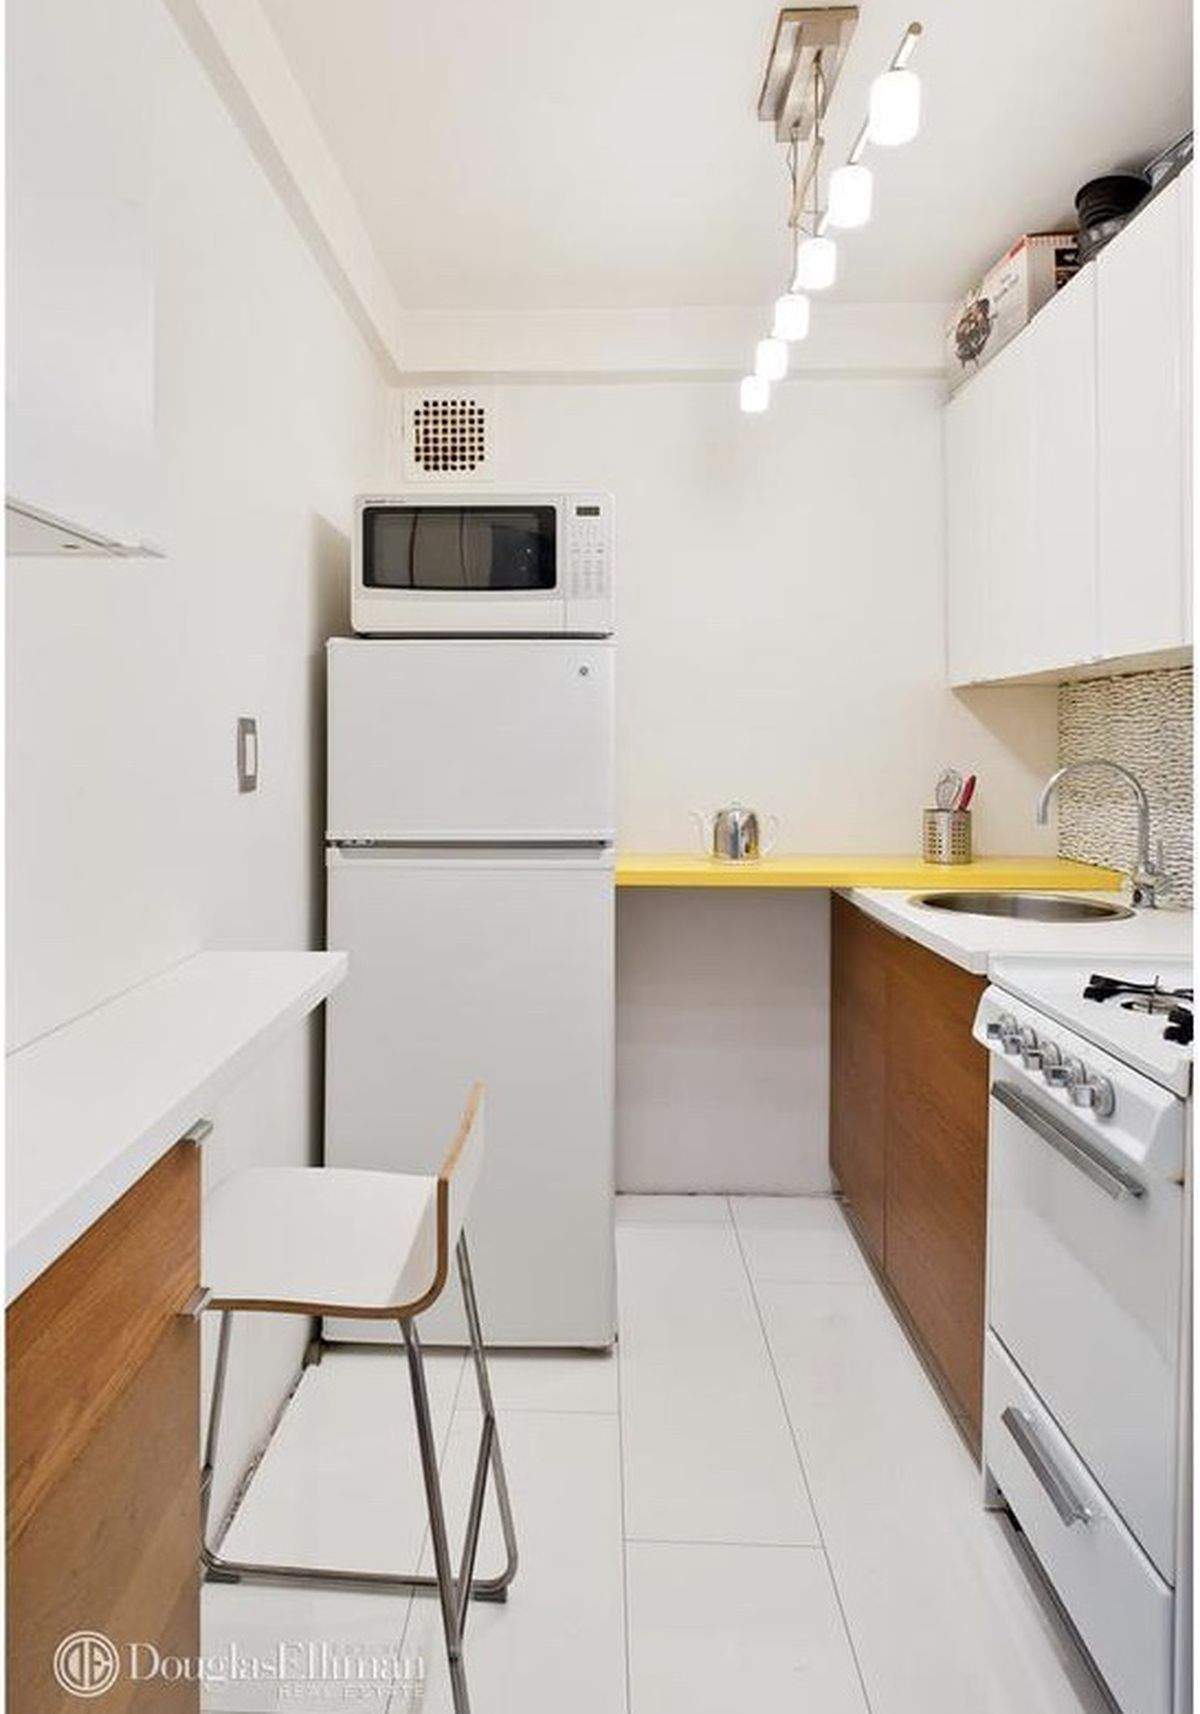 For $595K, a tiny Chinatown condo with lots of storage space - Curbed NY